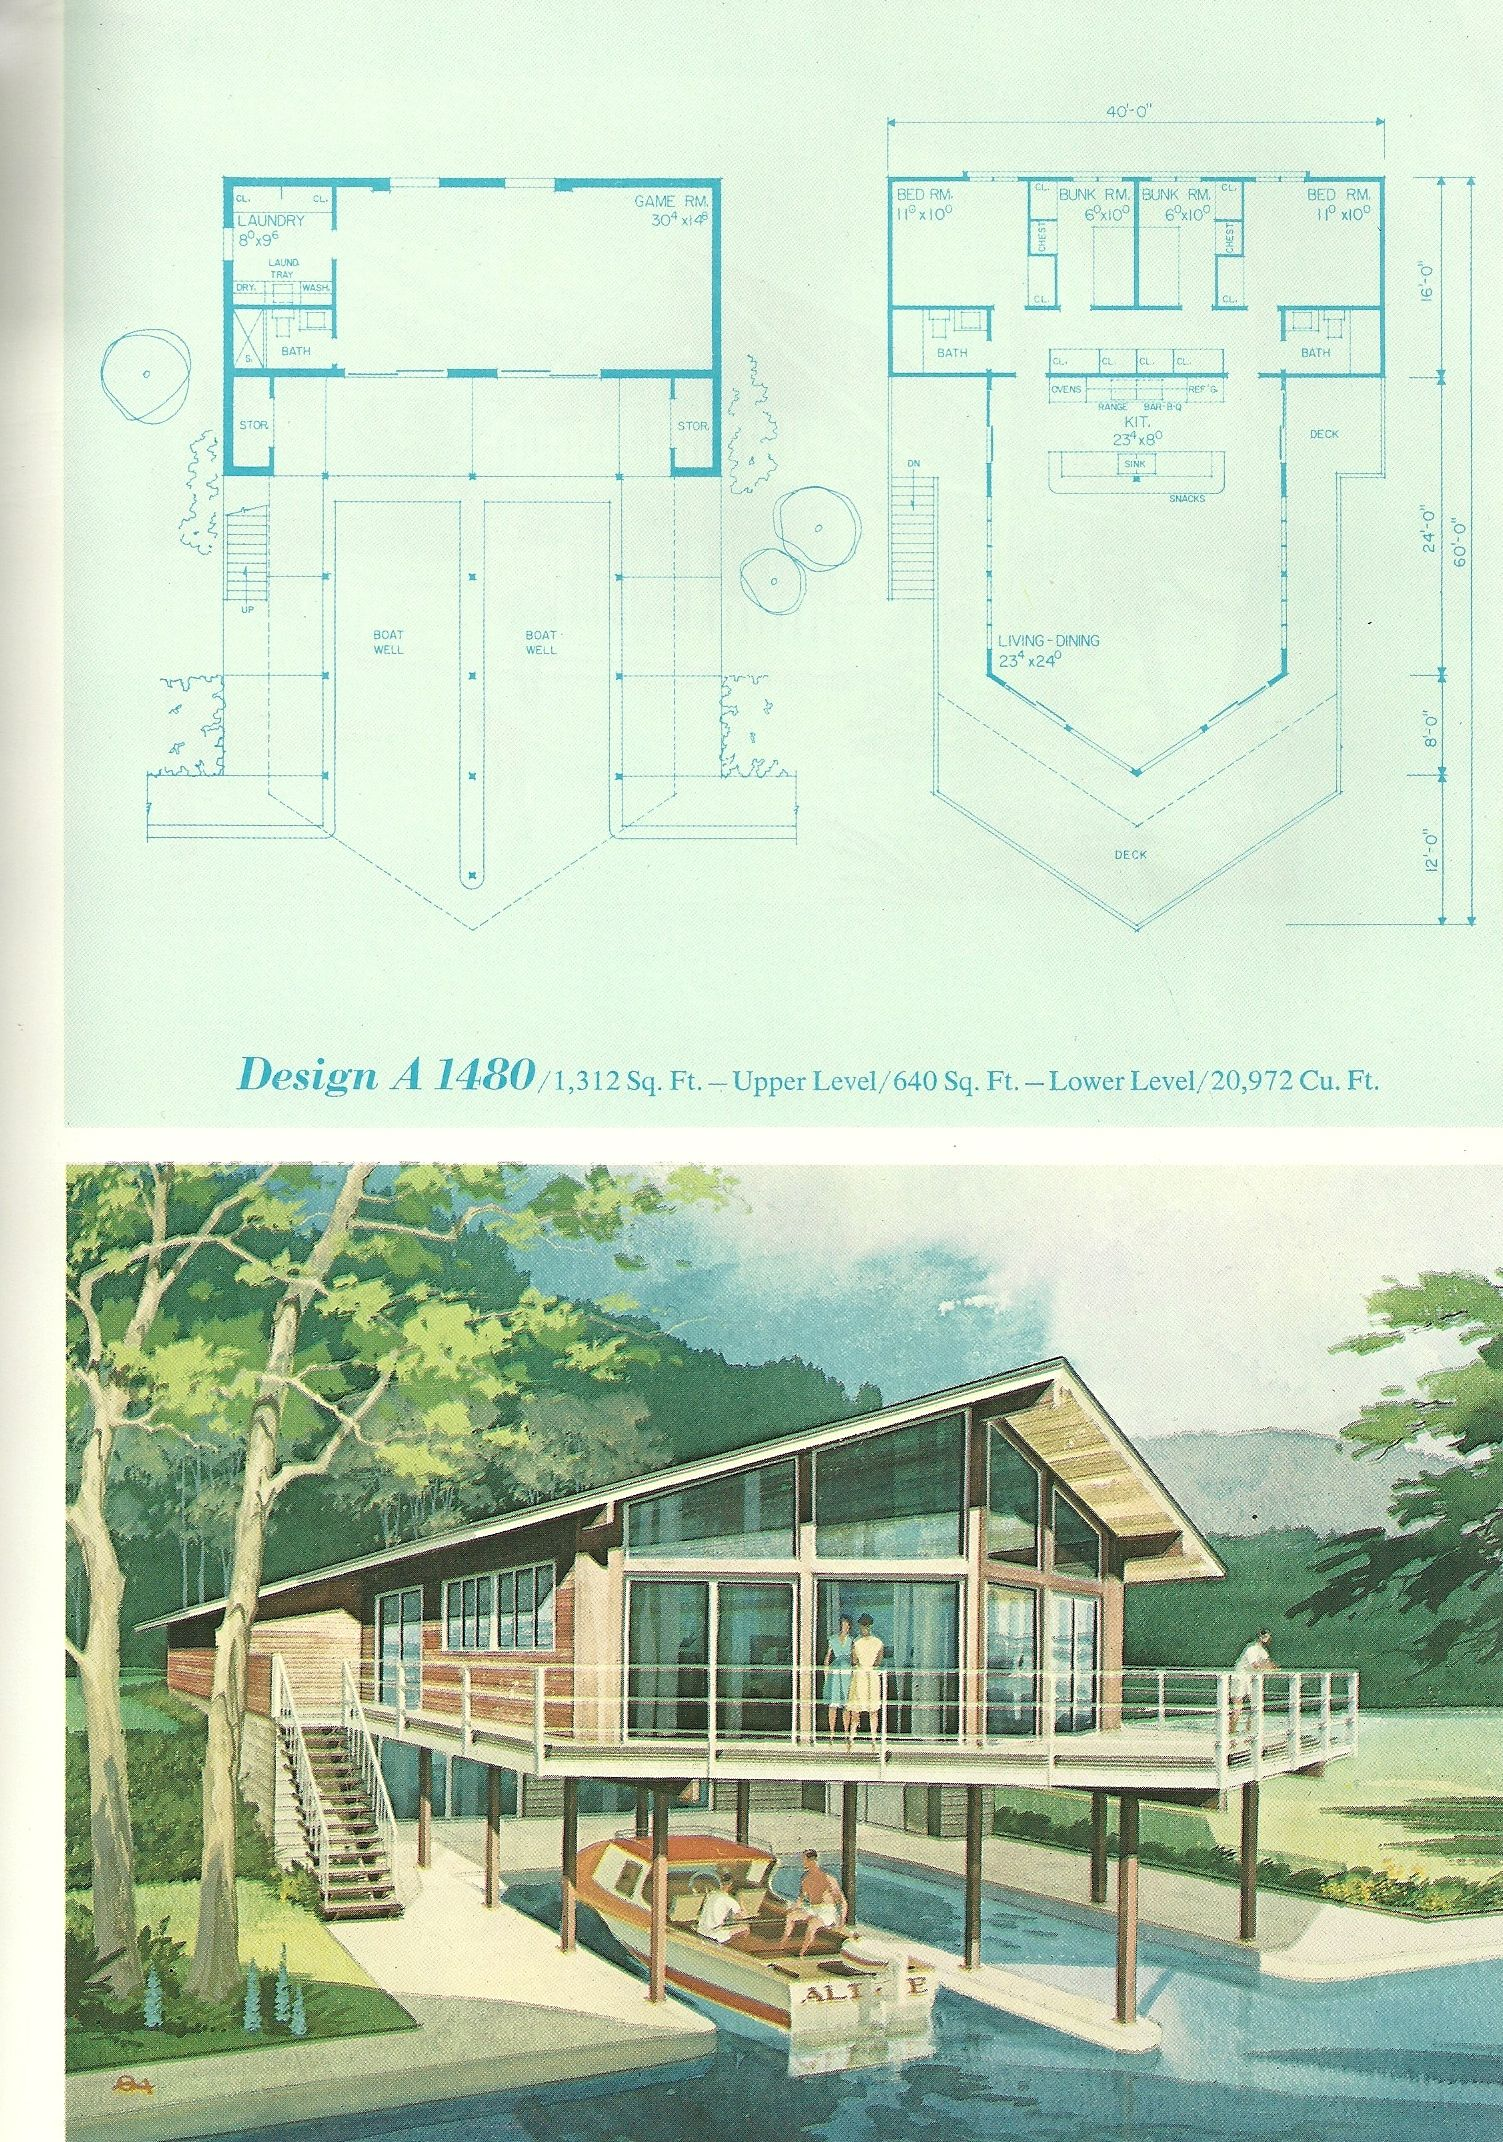 Vintage Vacation Home Plans 1480 (With images) | Vintage ...